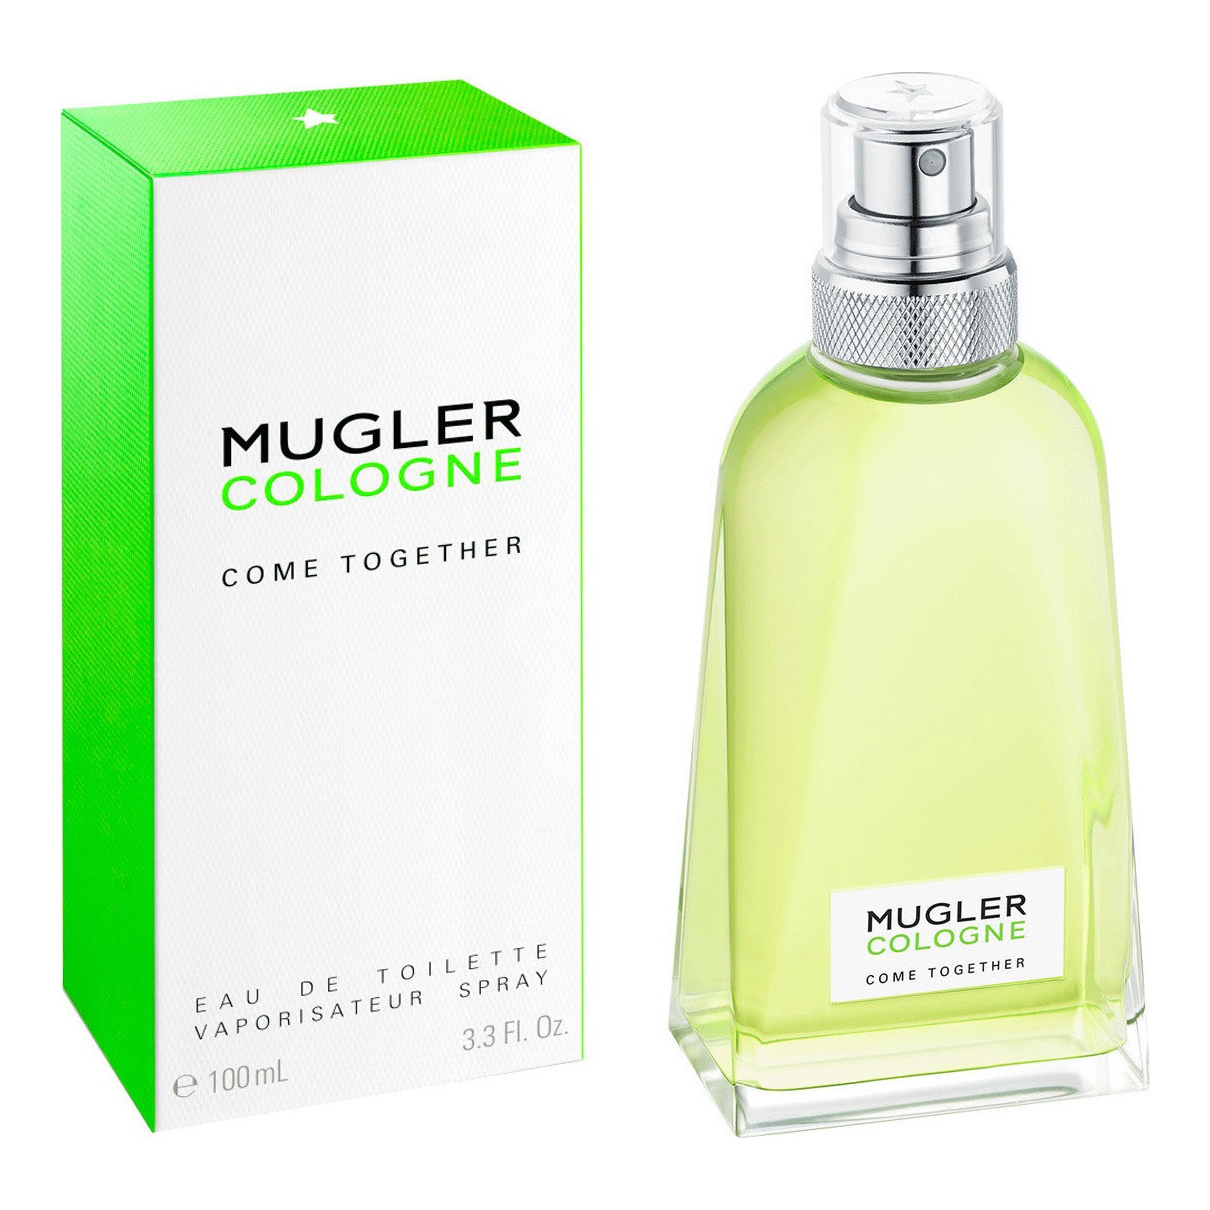 T.Mugler COLOGNE COME TOGETHER